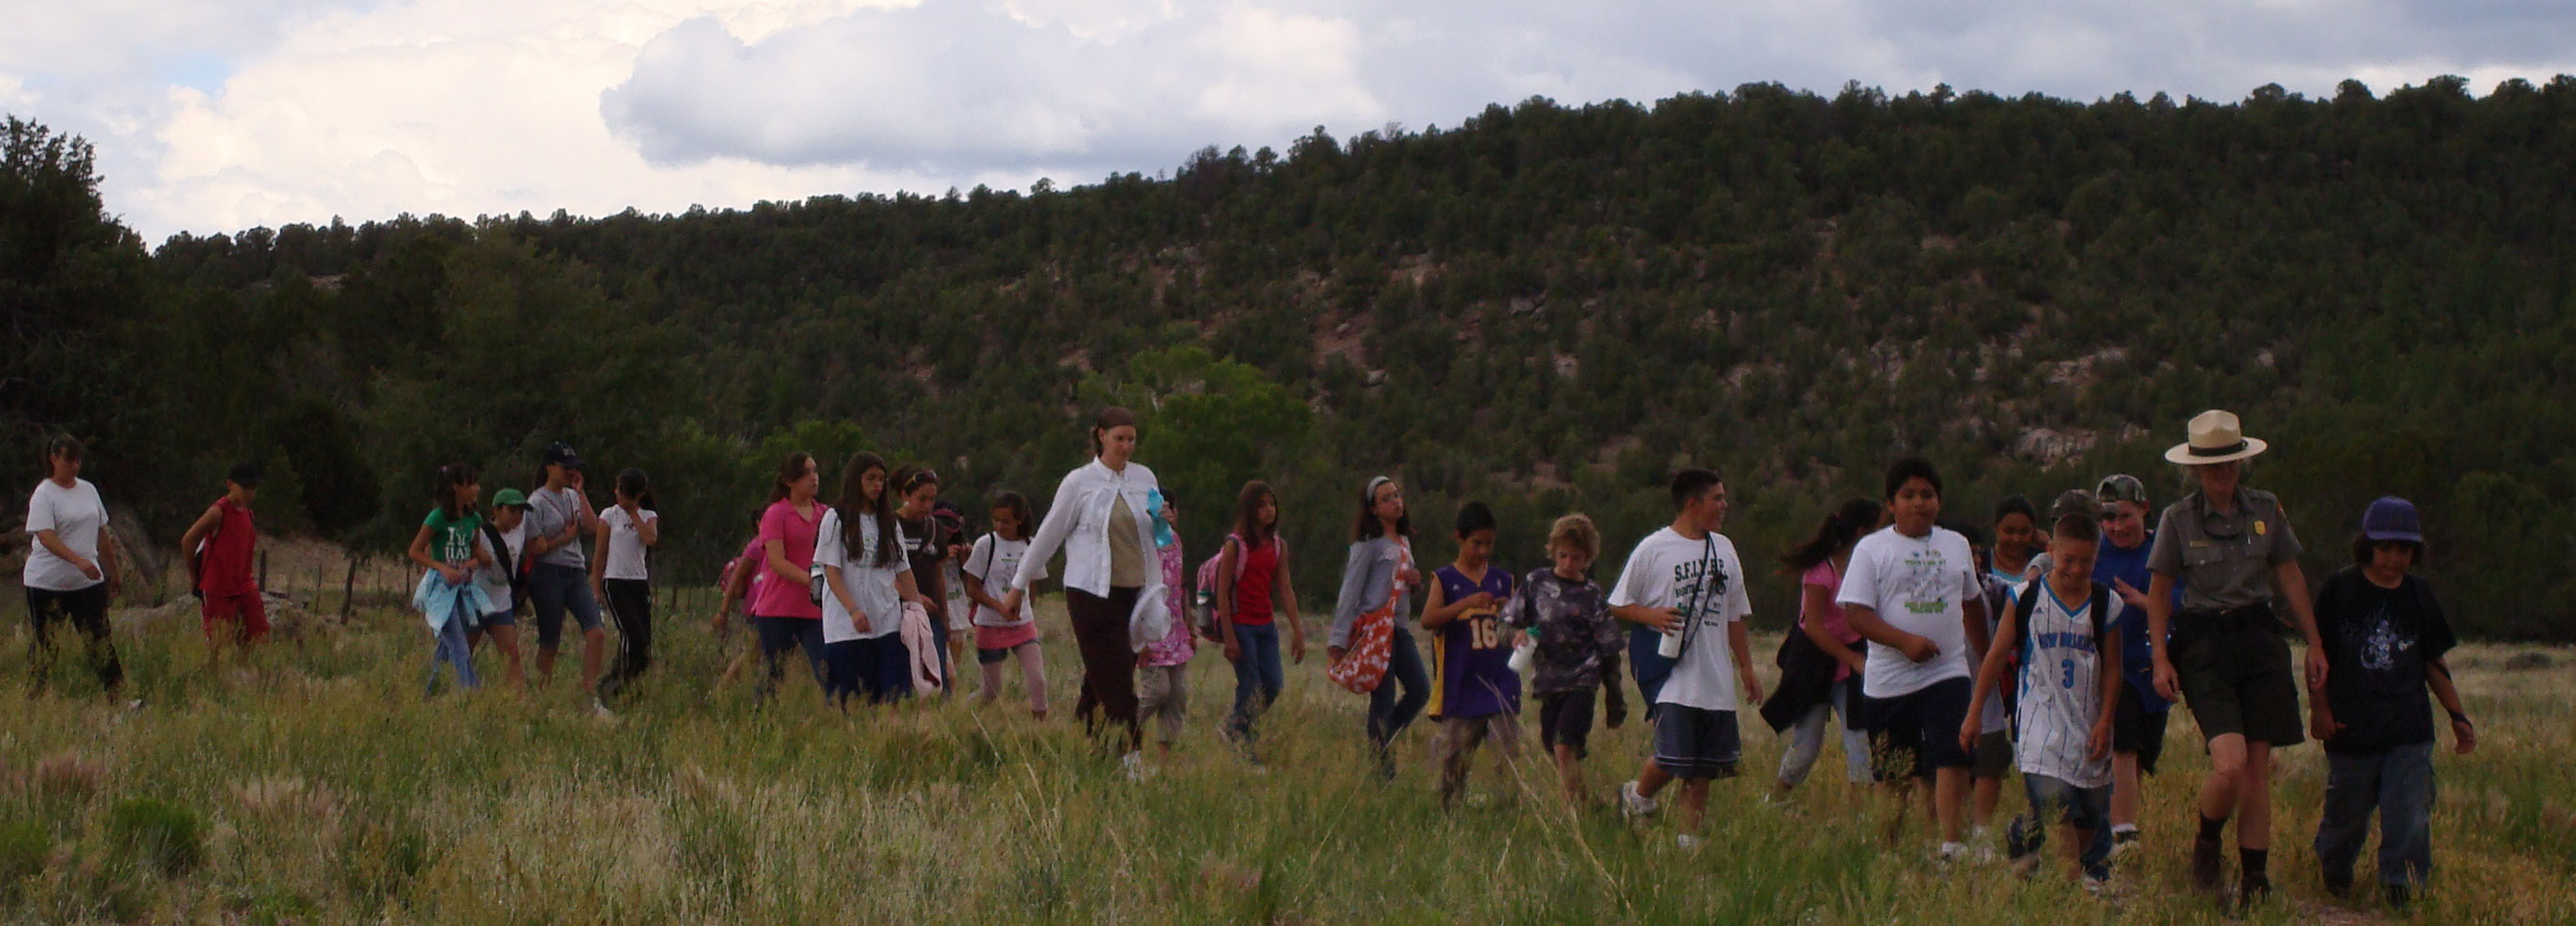 Large school group hiking to site with ranger leading